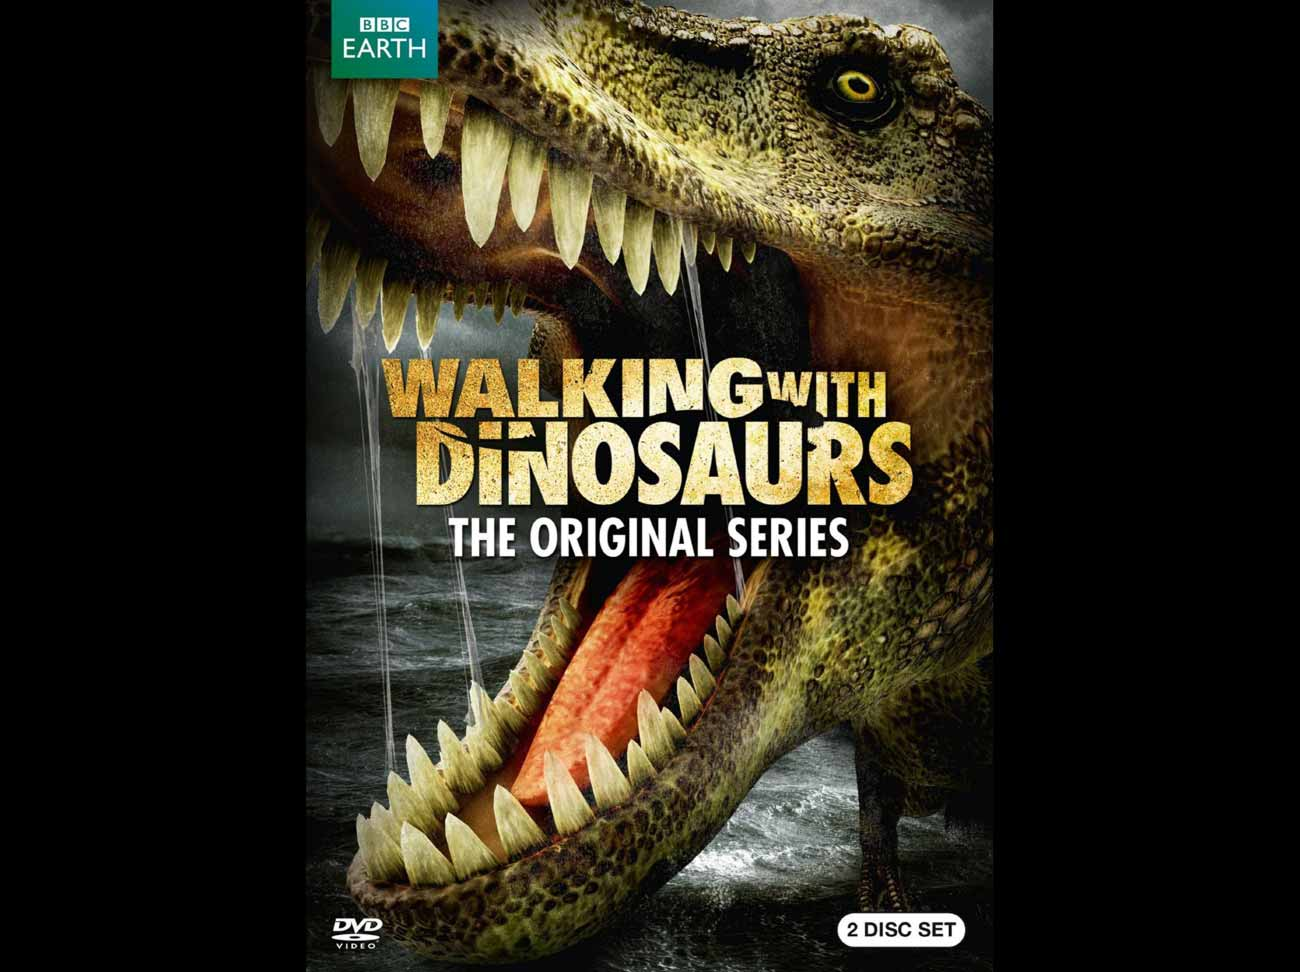 The Walking with Dinosaurs TV series is gripping family viewing, and an excellent way to introduce your kids to dinosaurs.